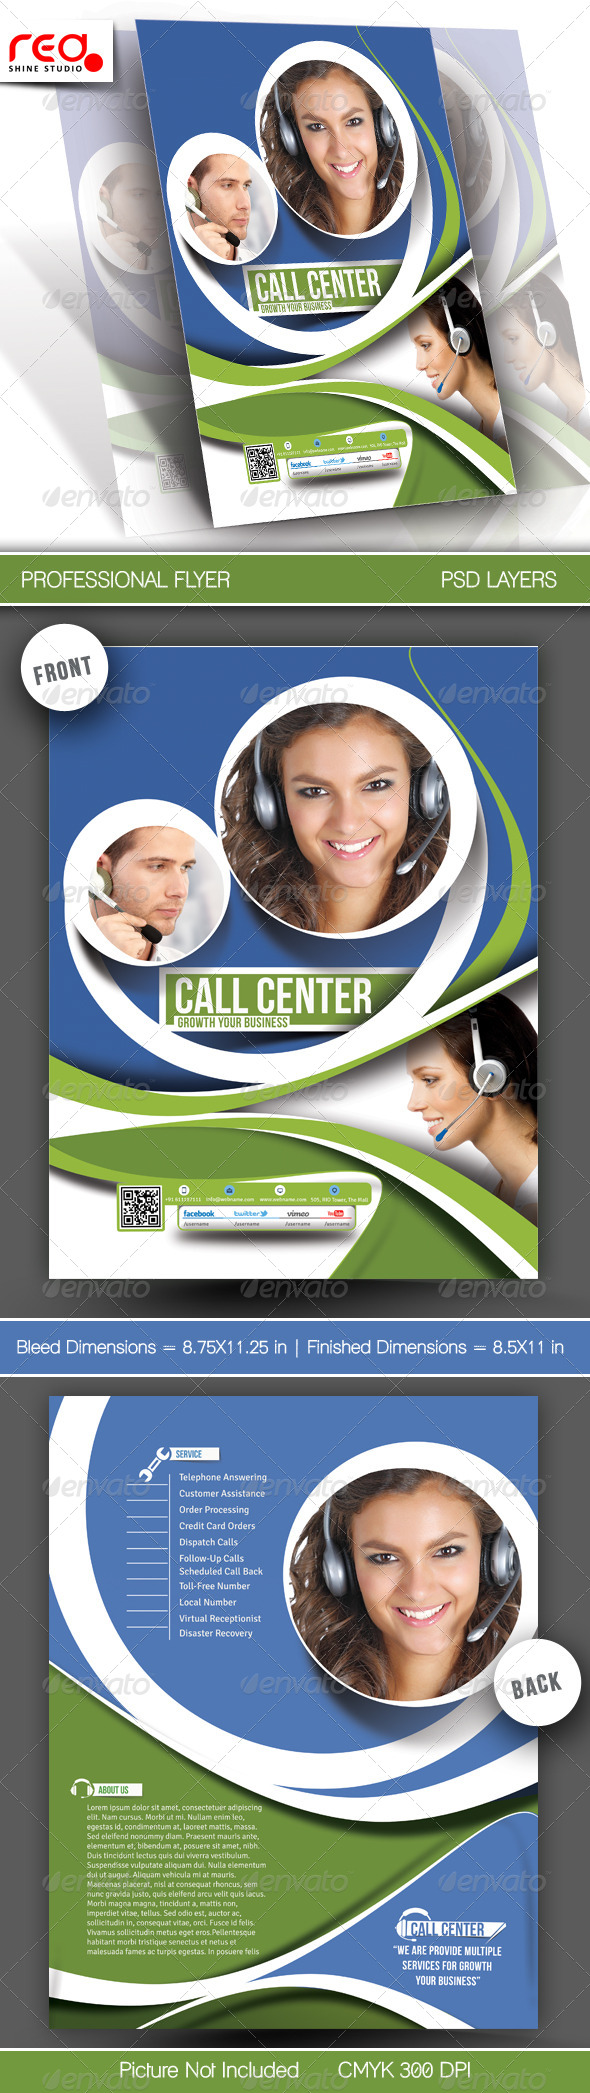 GraphicRiver Customer Support Flyer & Poster Template 3 6139930